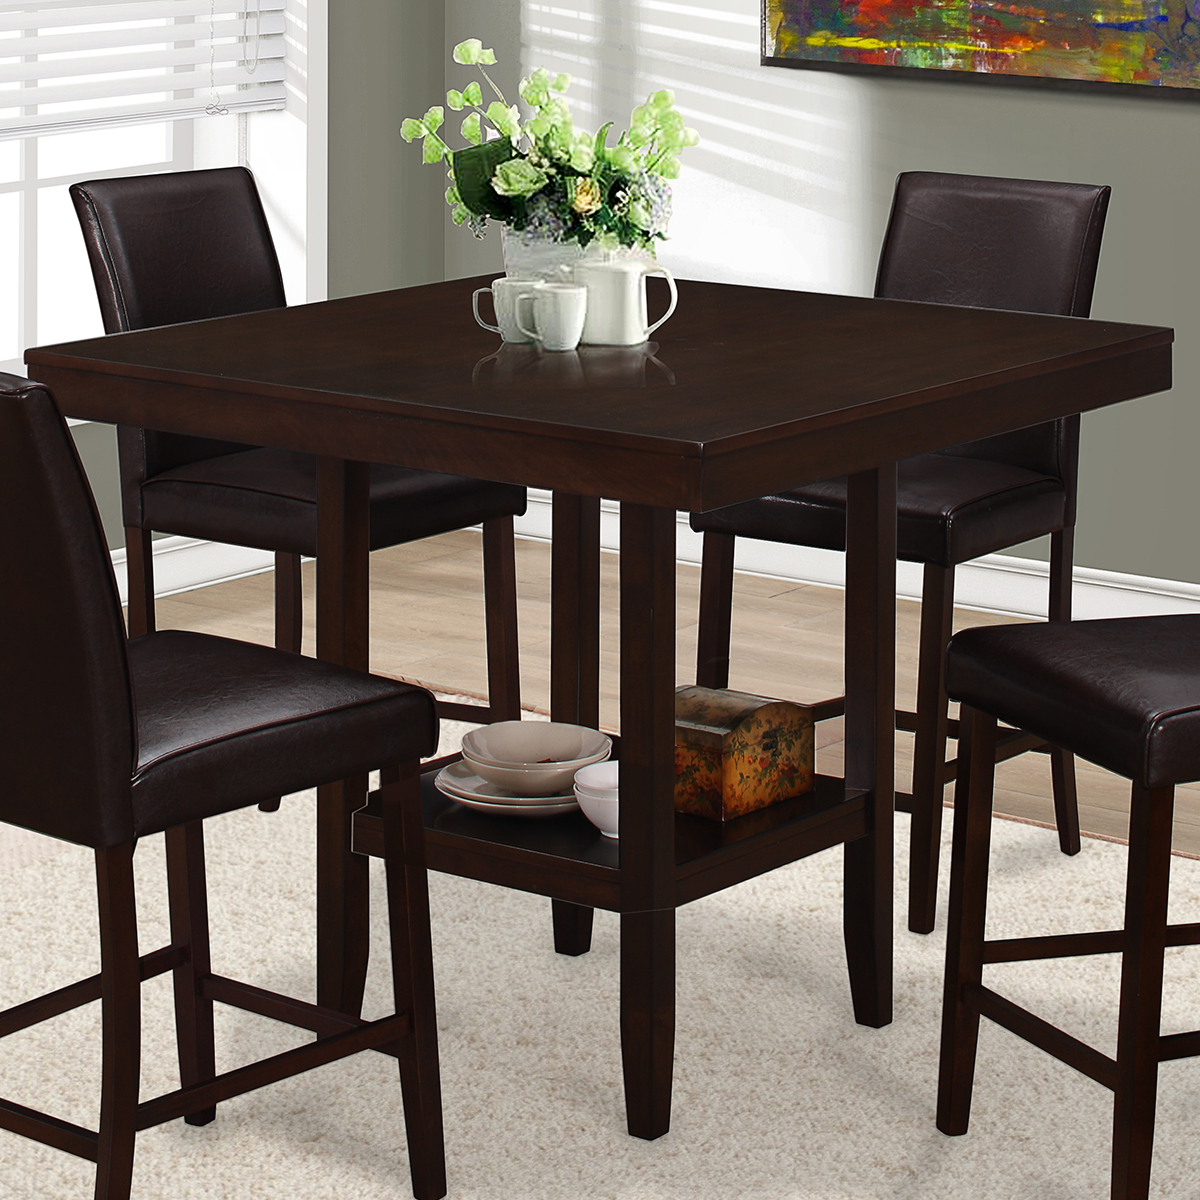 Monarch Specialties I 1900 Dining Table 42 Quot Square Counter